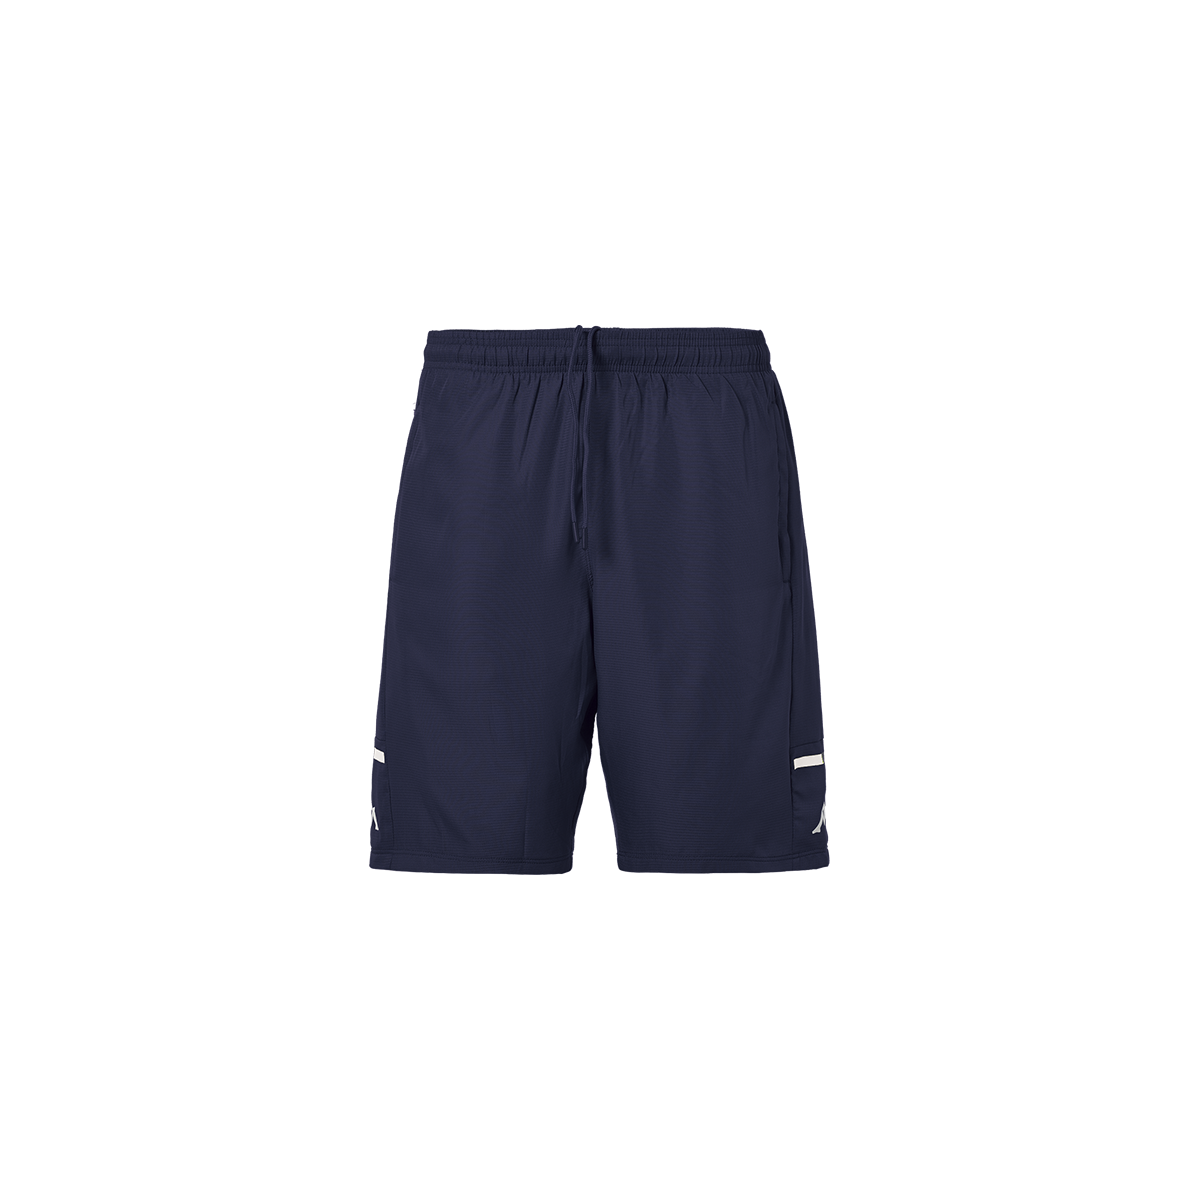 Kappa Alberg Pro 4 Training Long Short - Blue Marine/White